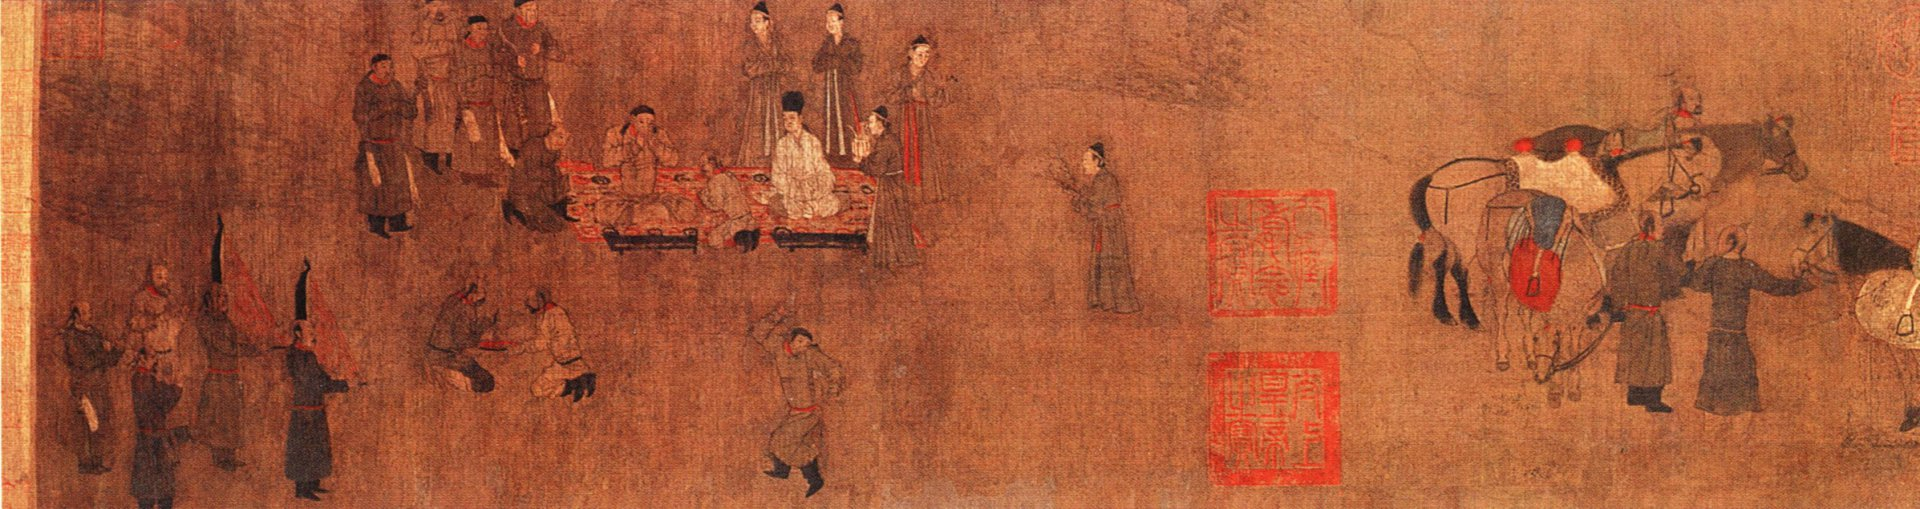 Ху Жан076_1c0086a.Ancient_Chinese_Painting.jpg